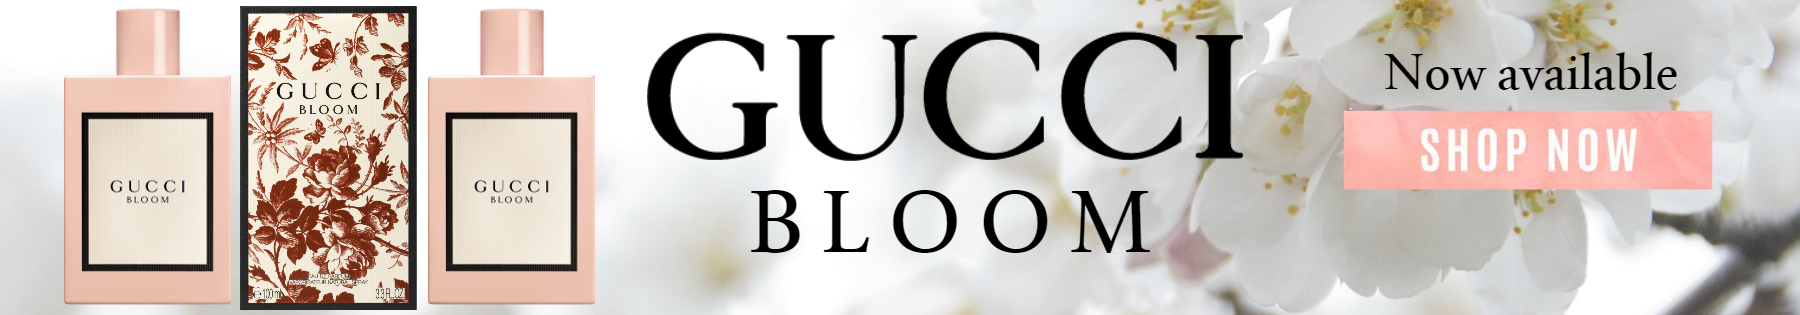 The newest perfume is here: Gucci Bloom!